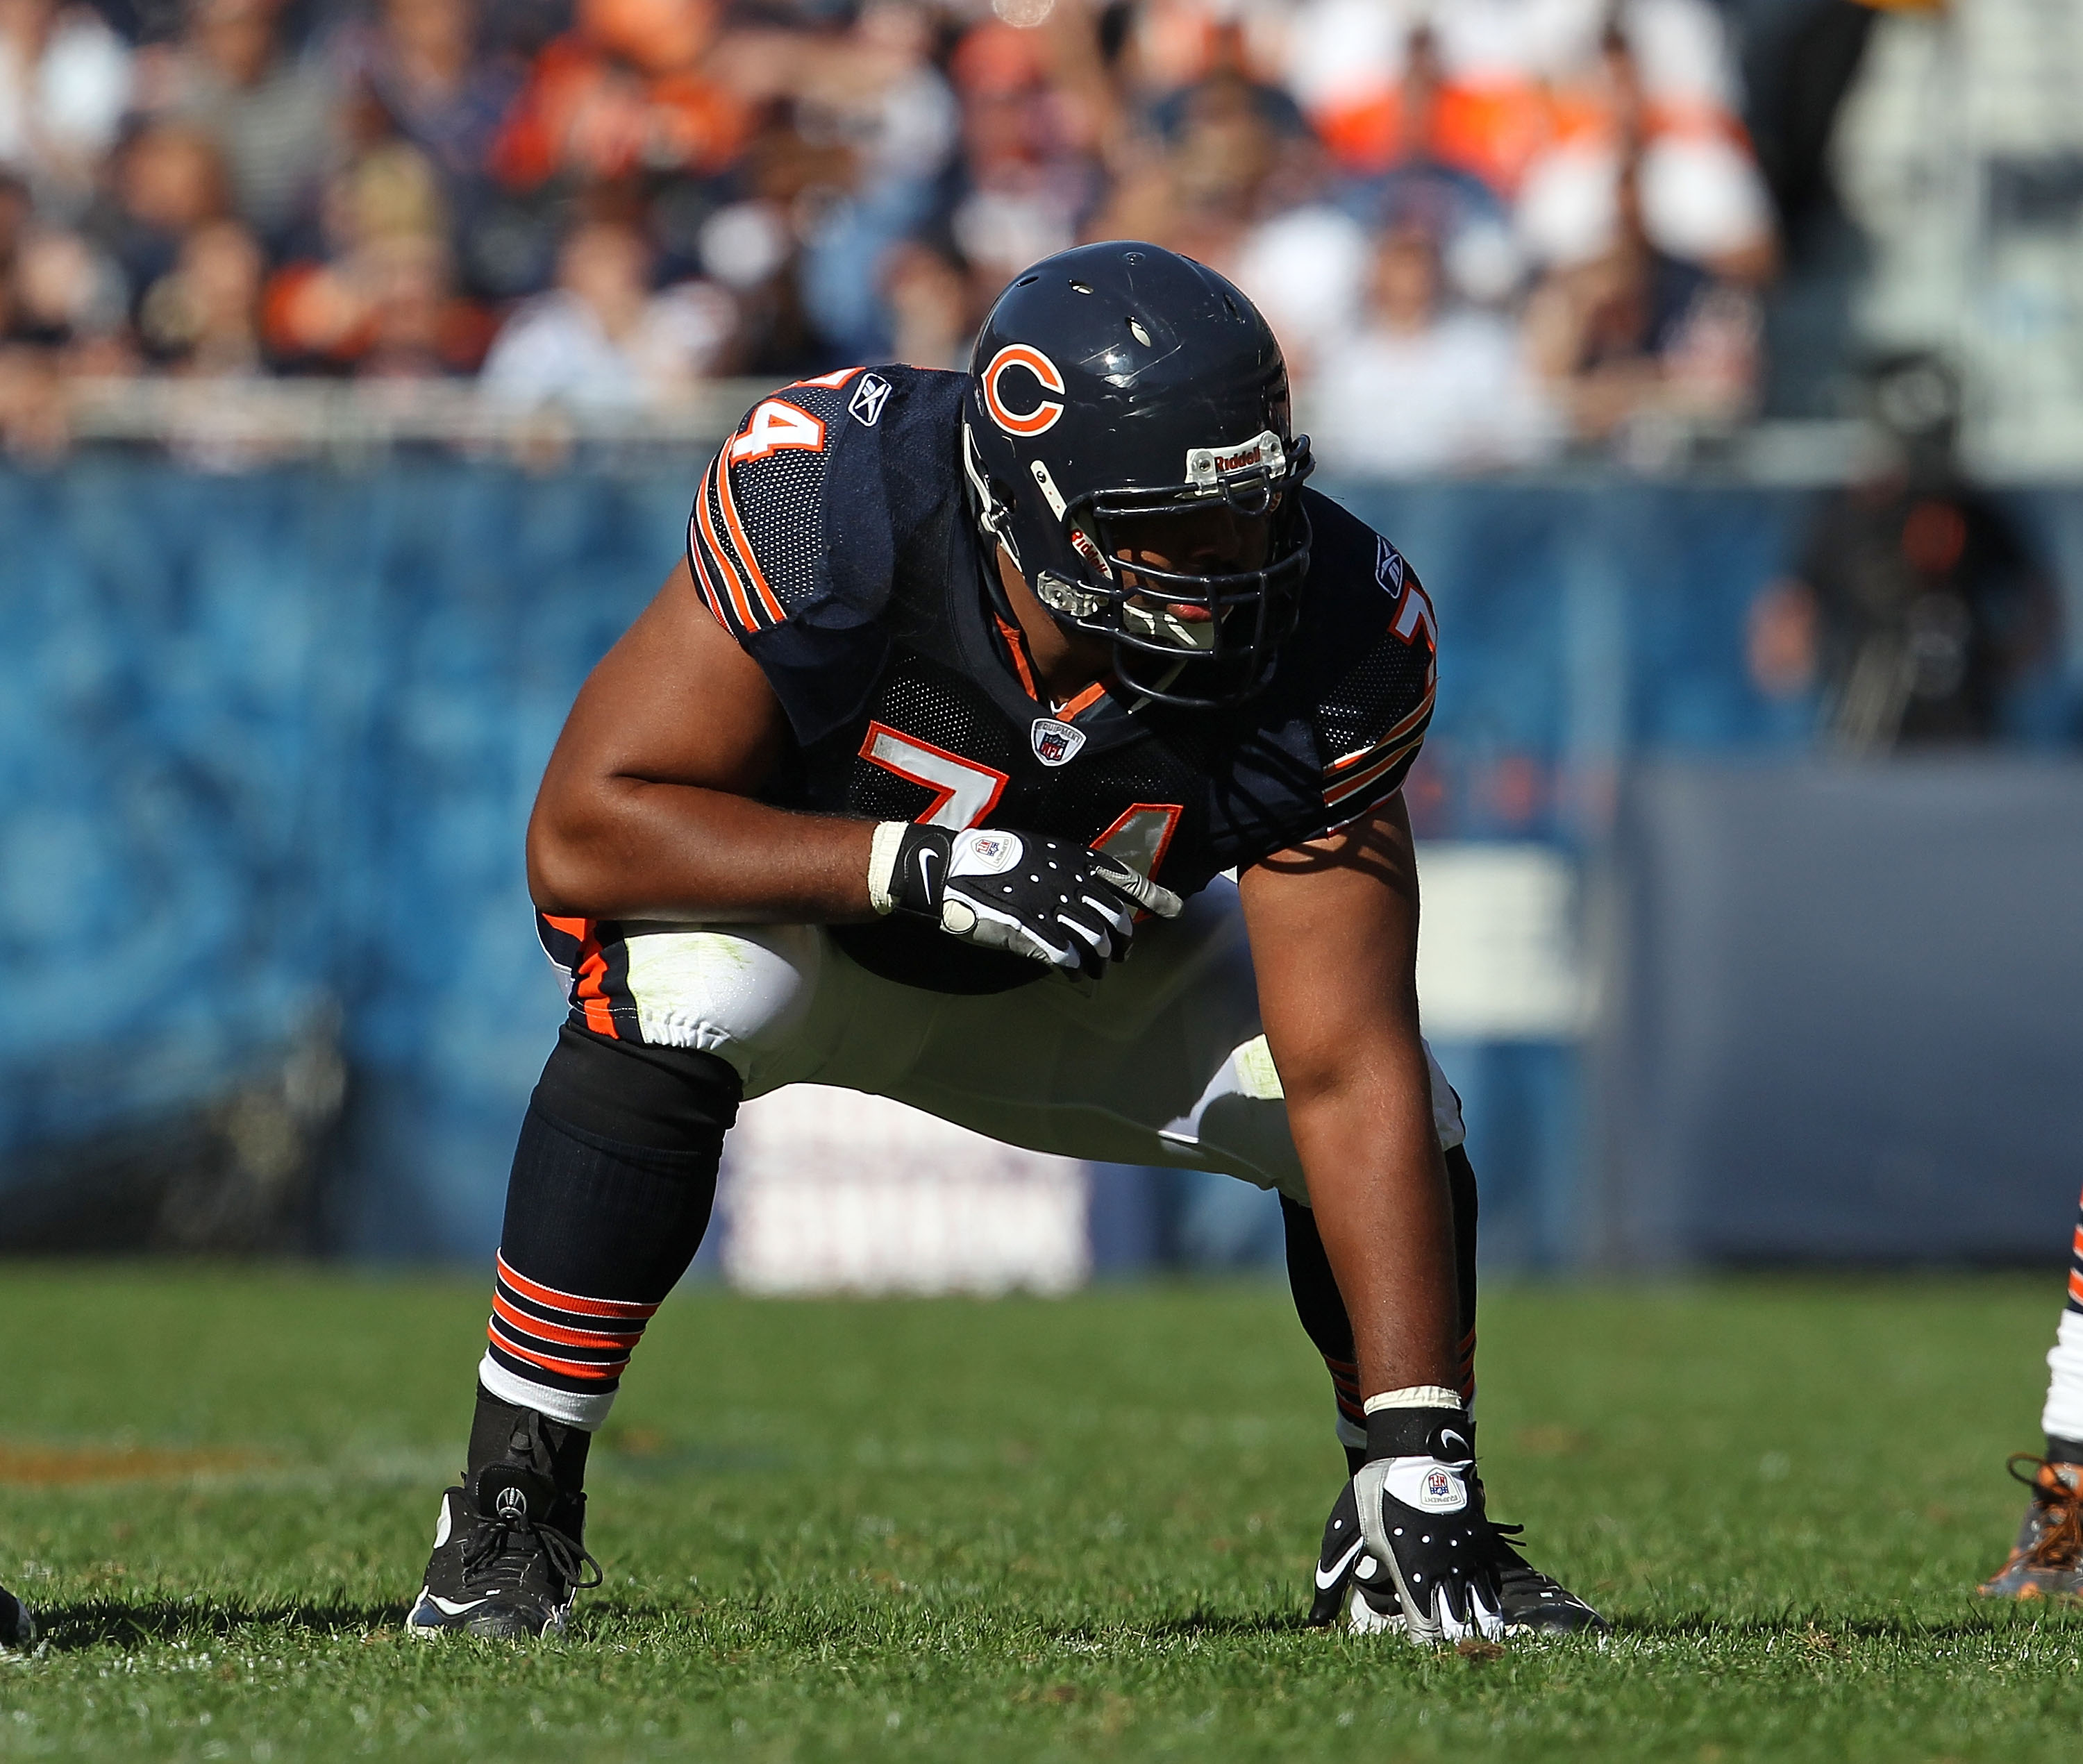 CHICAGO - OCTOBER 17: Chris Williams #74 of the Chicago Bears awaits the start of play against the Seattle Seahawks at Soldier Field on October 17, 2010 in Chicago, Illinois. The Seahawks defeated the Bears 23-20. (Photo by Jonathan Daniel/Getty Images)